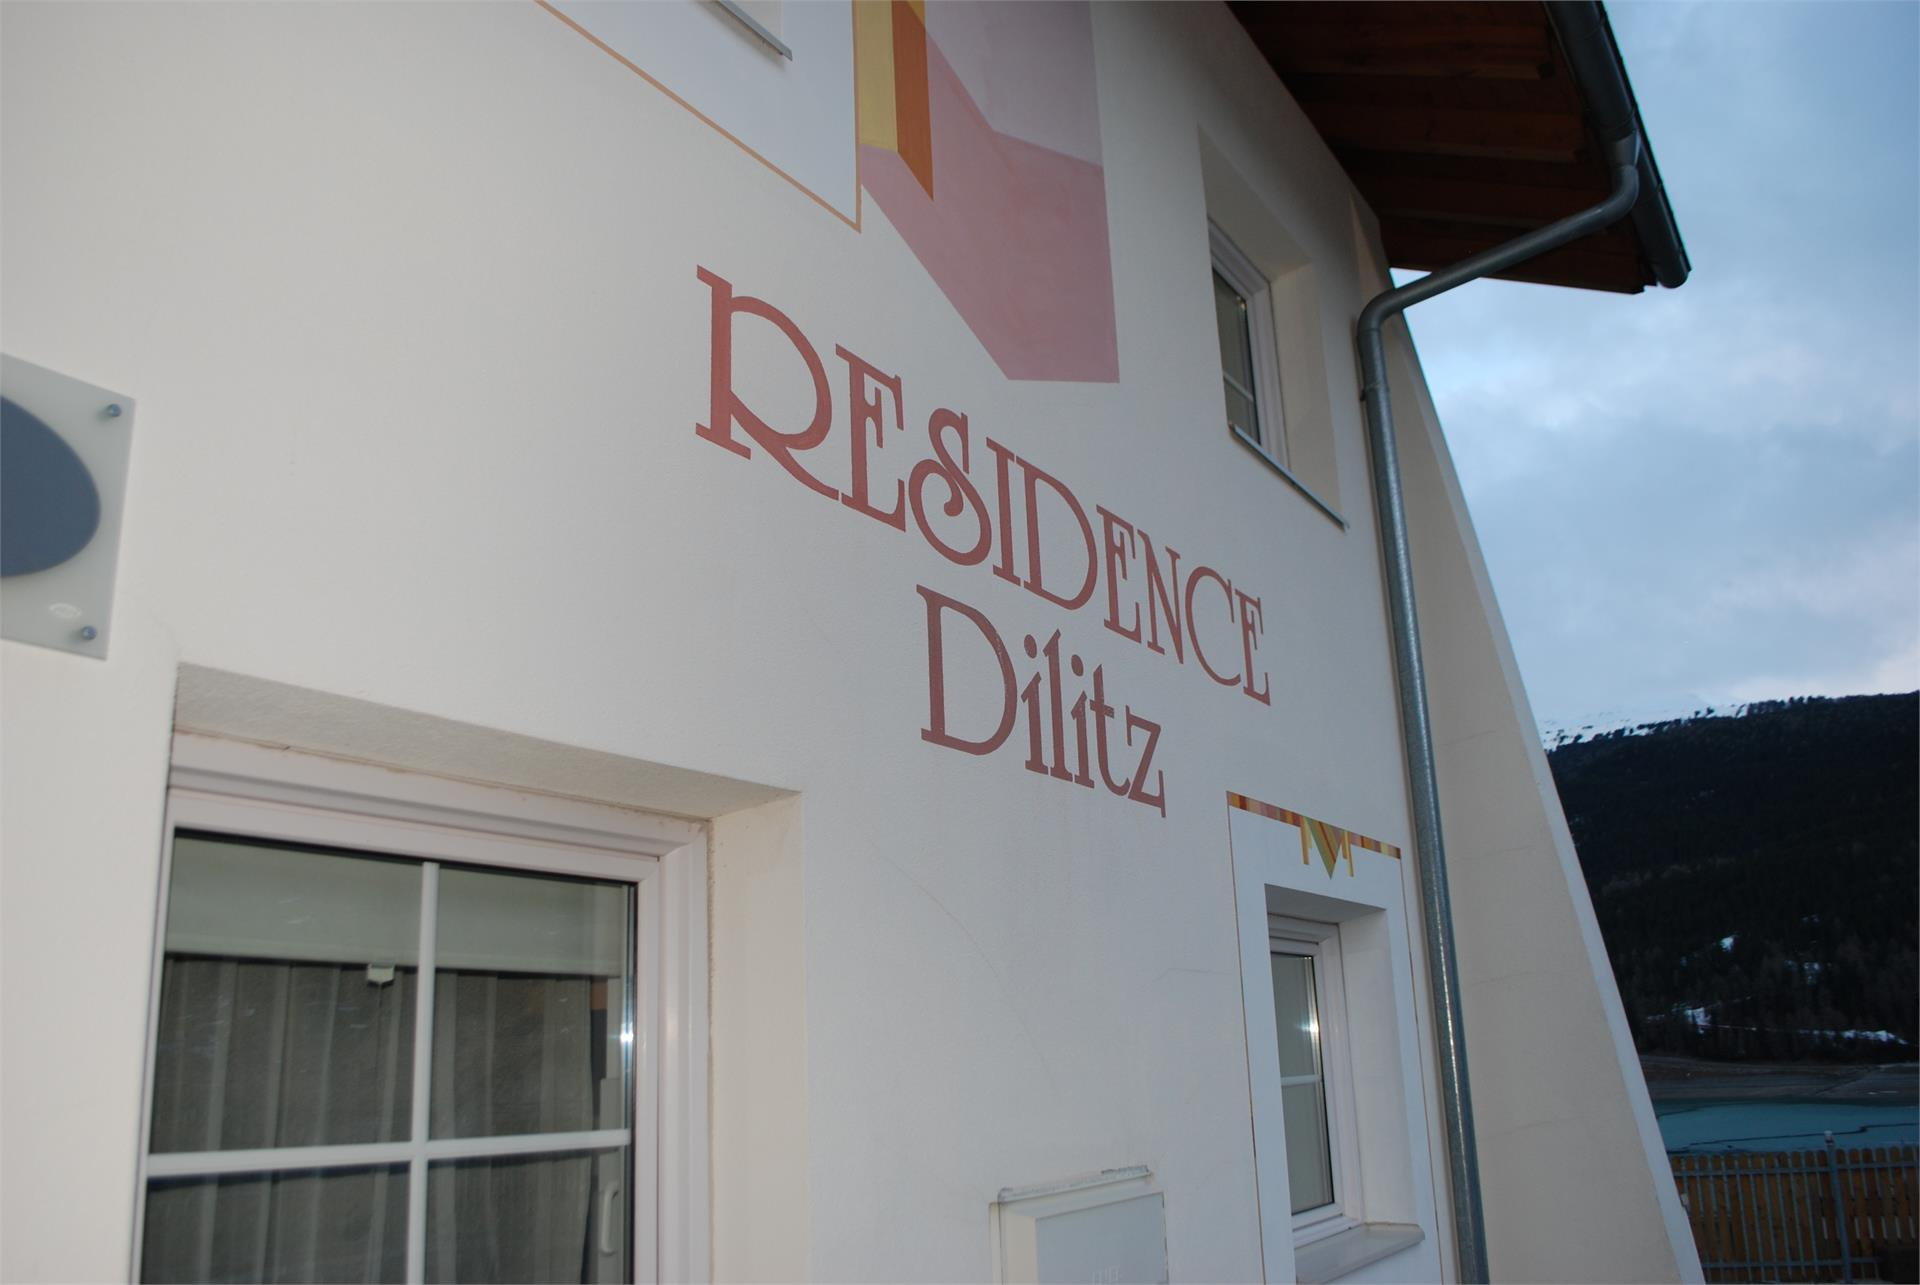 Residence Dilitz